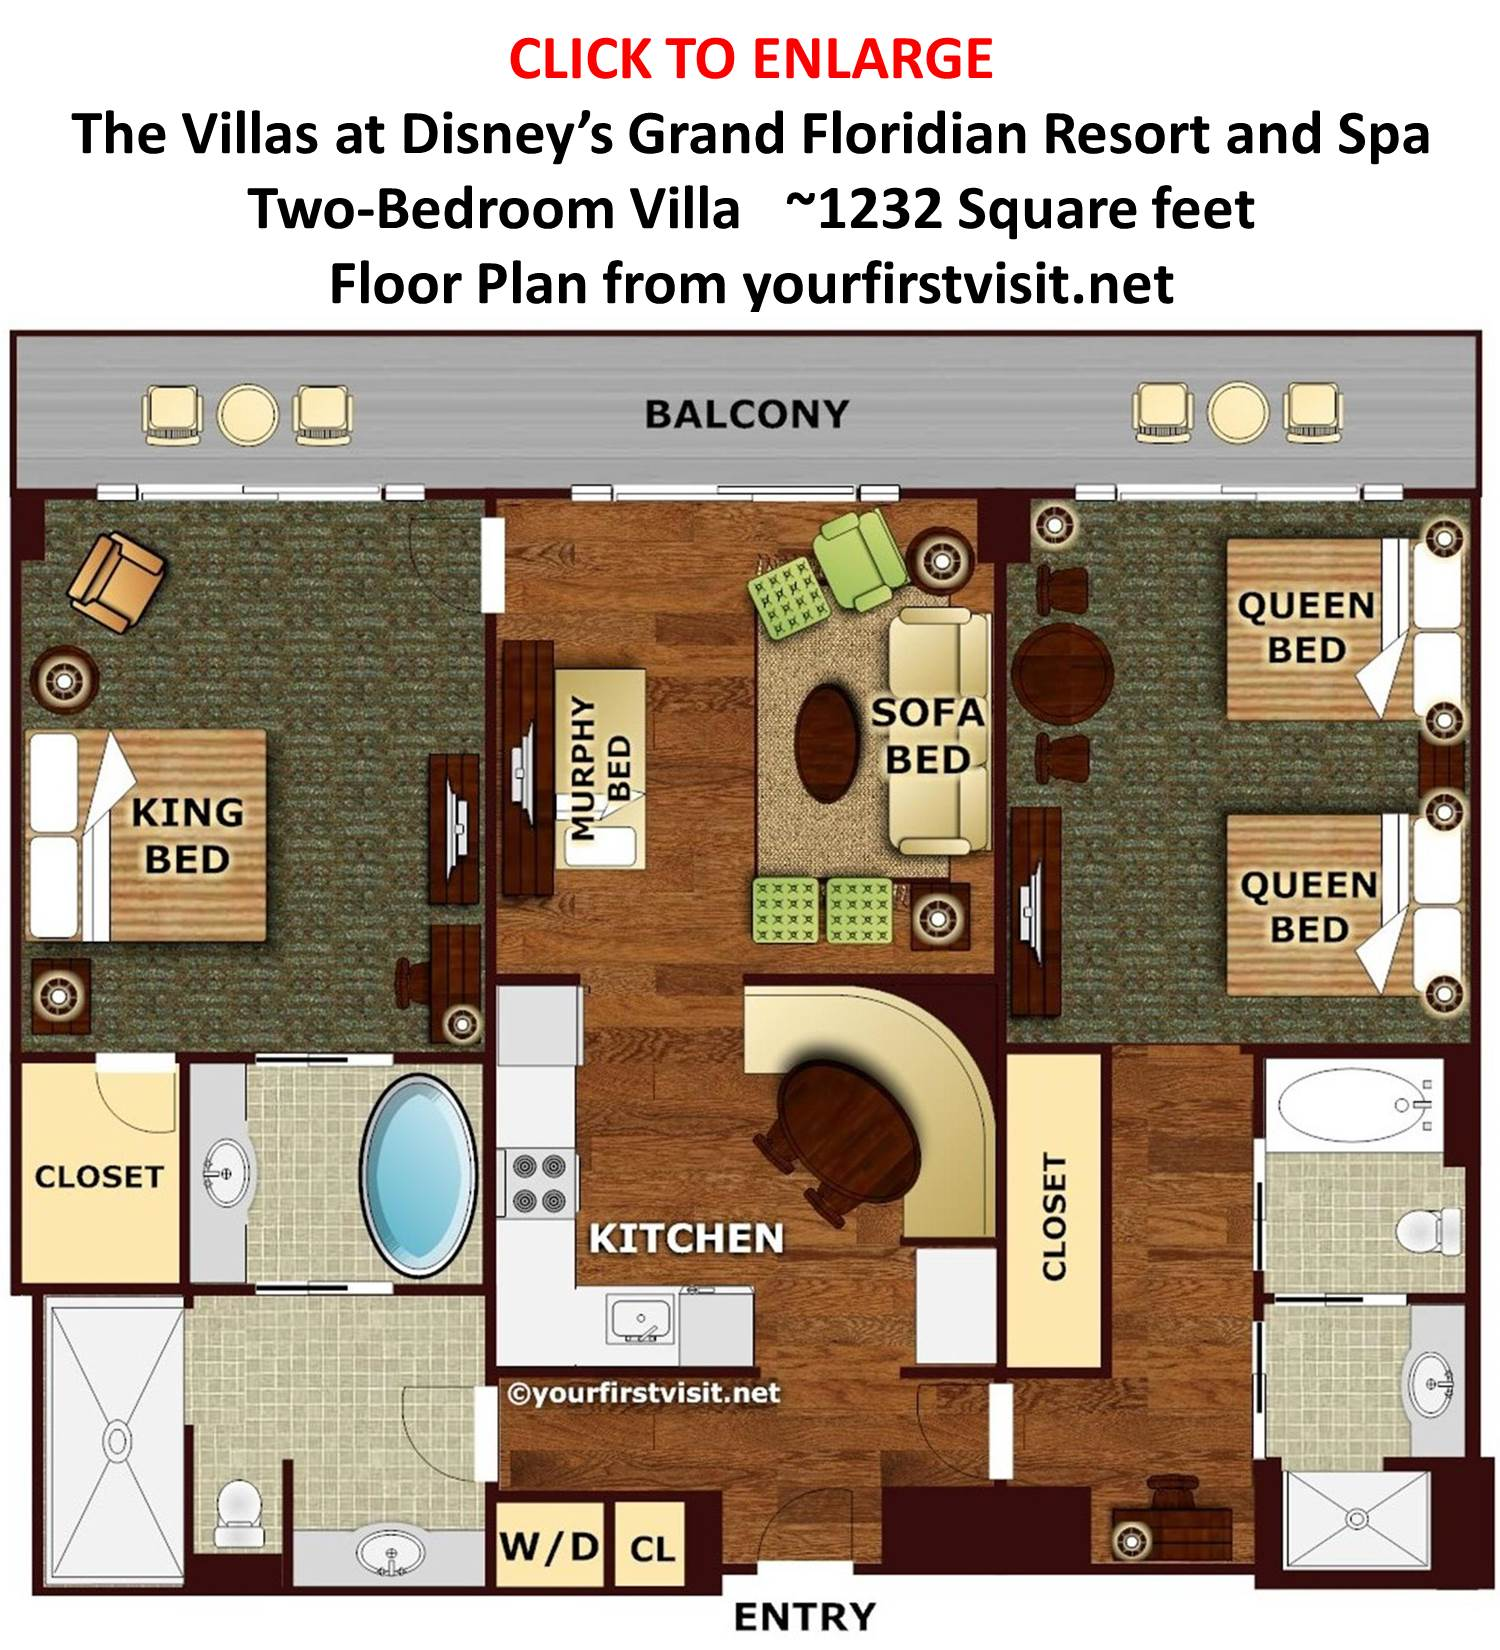 The living dining and kitchen spaces at the villas at - 2 bedroom villas near disney world ...